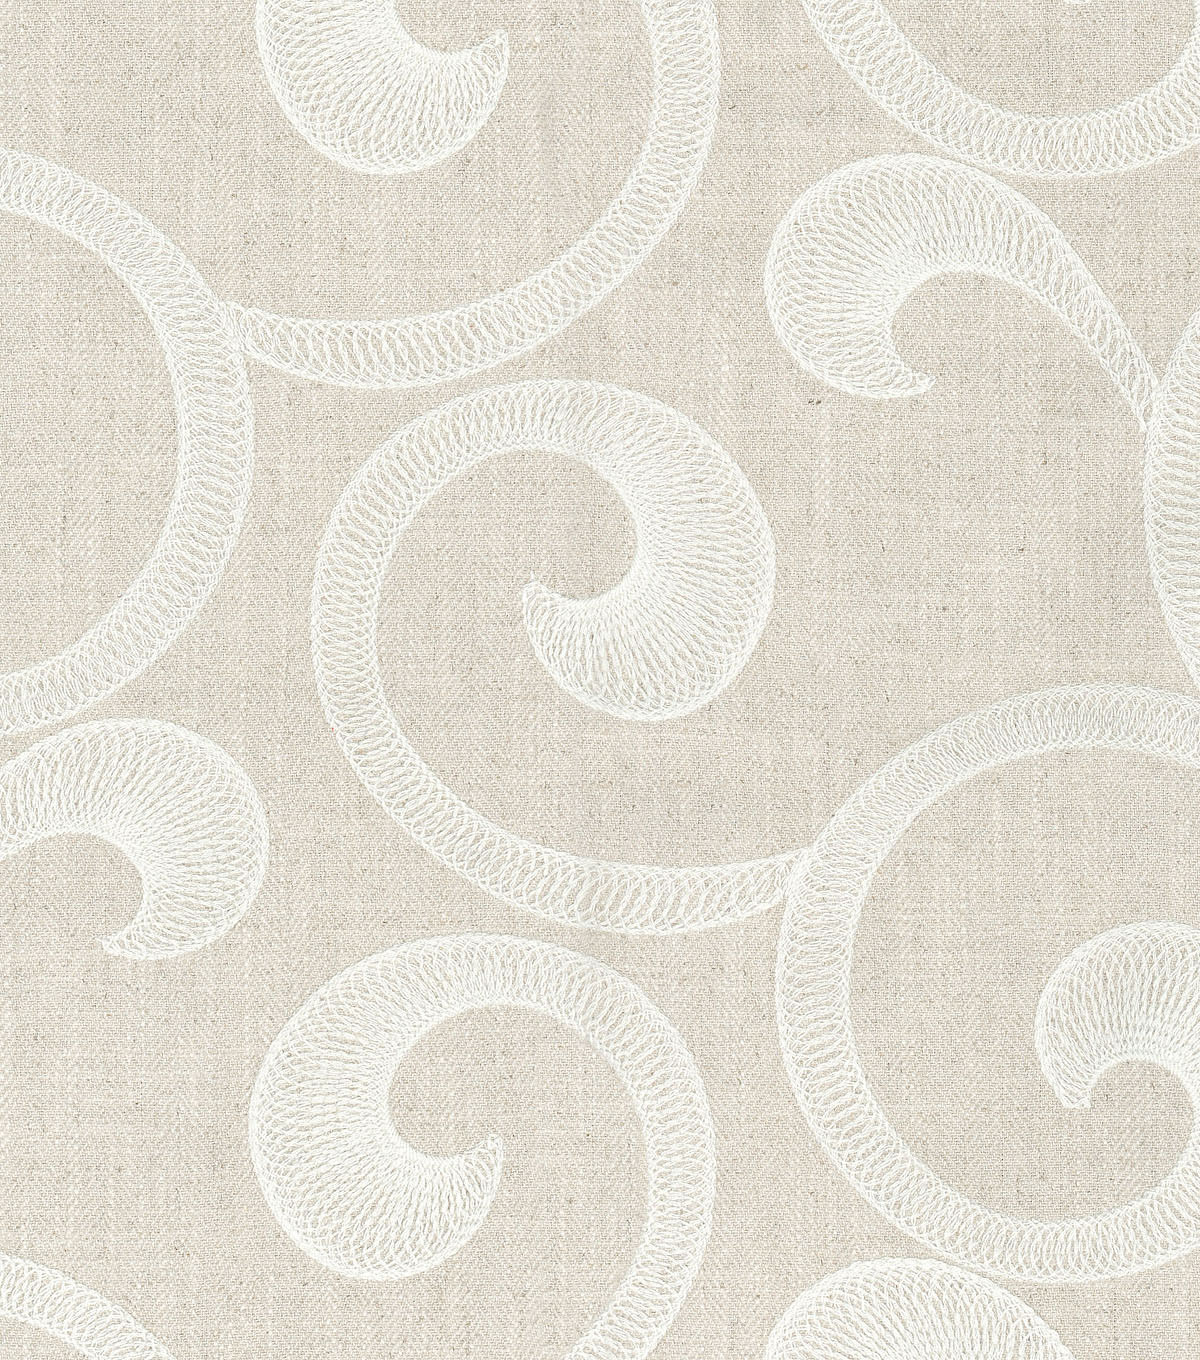 Williamsburg Multi-Purpose Decor Fabric-Hampton Scroll/Alabaster